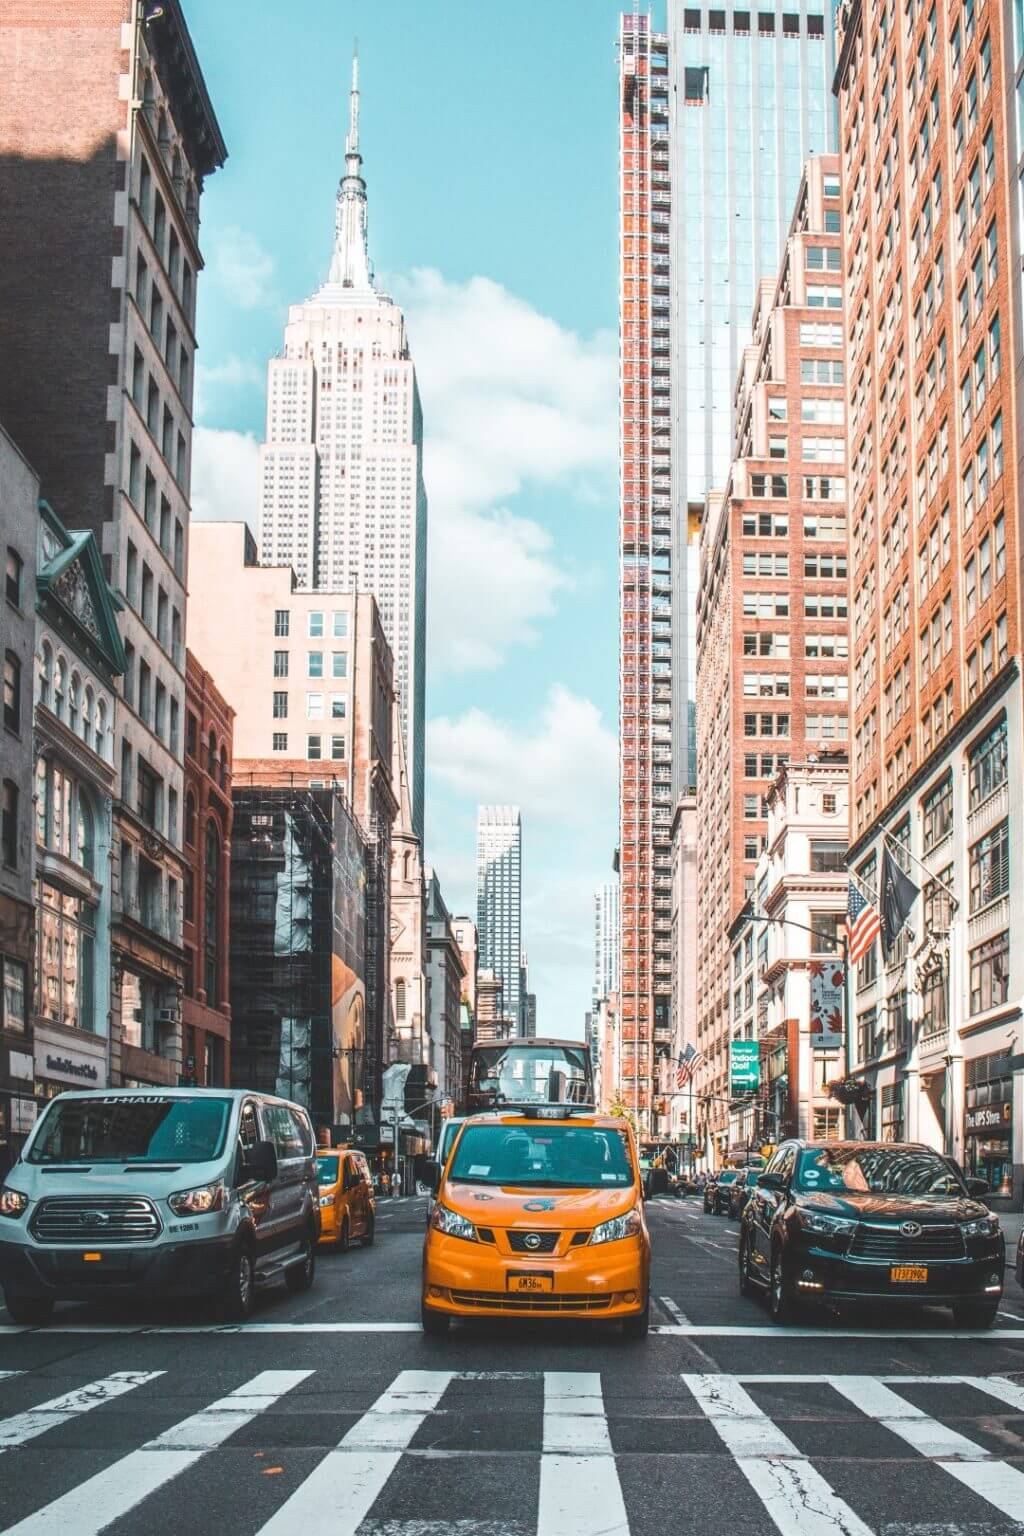 Metro New York city traffic accident injury medical expense compensation